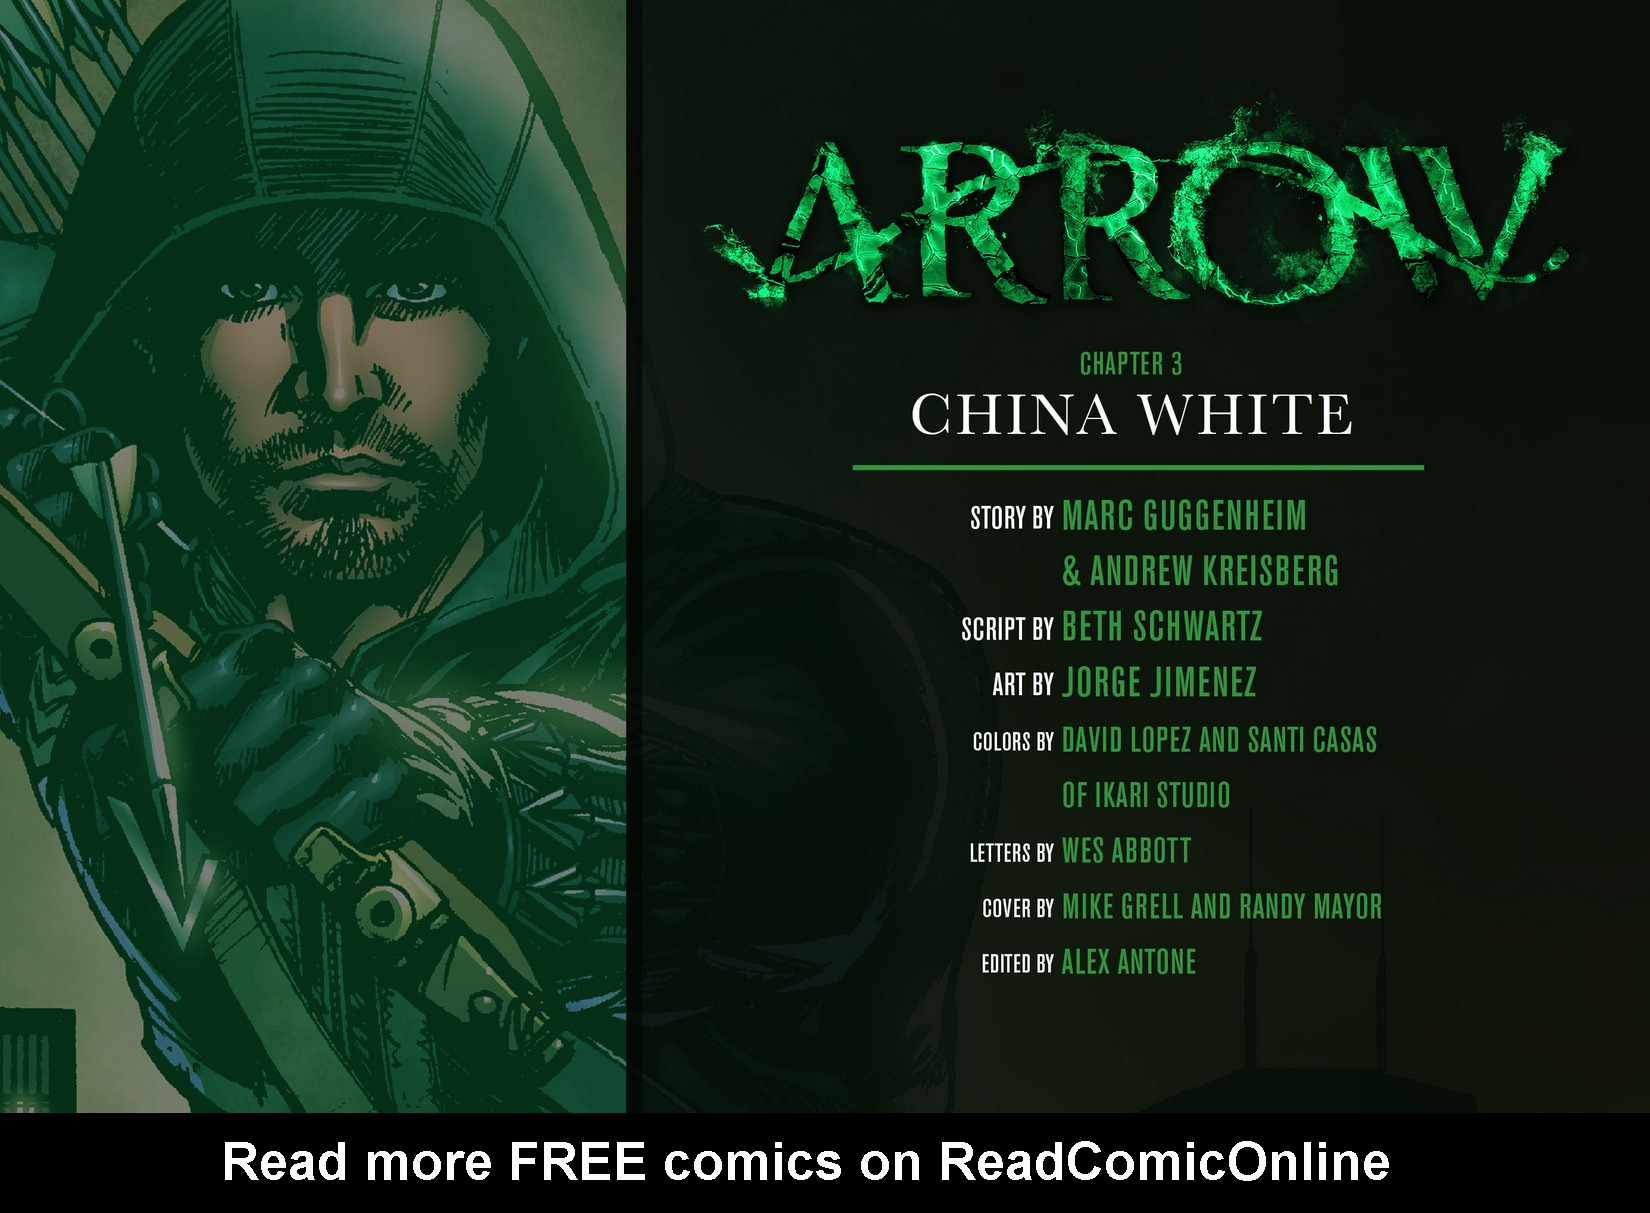 Read online Arrow [II] comic -  Issue #3 - 2